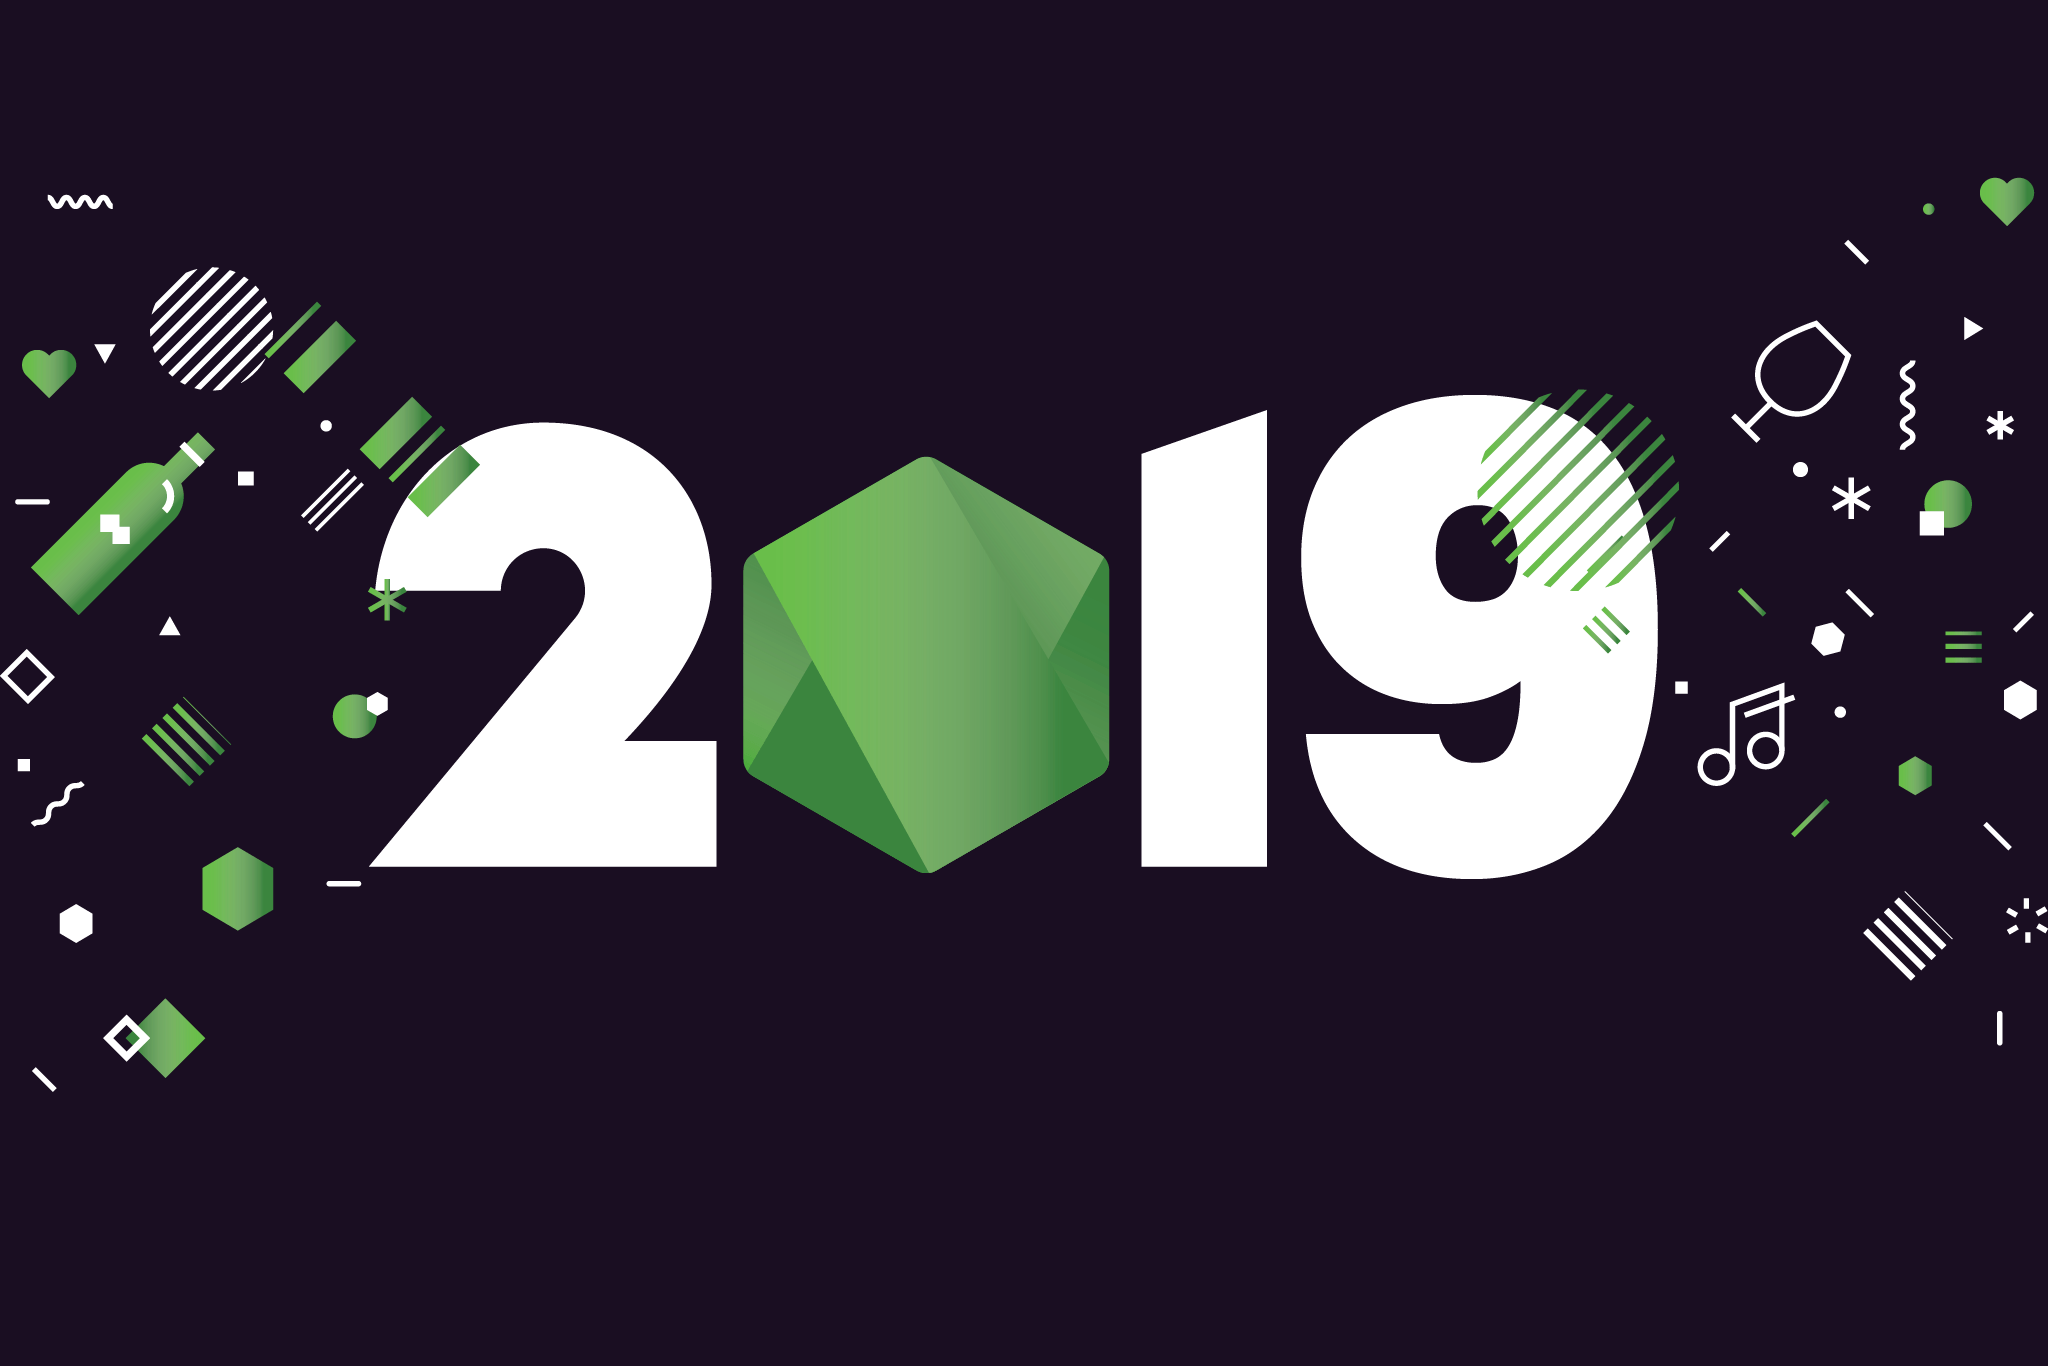 New Node js features will make it more versatile than ever